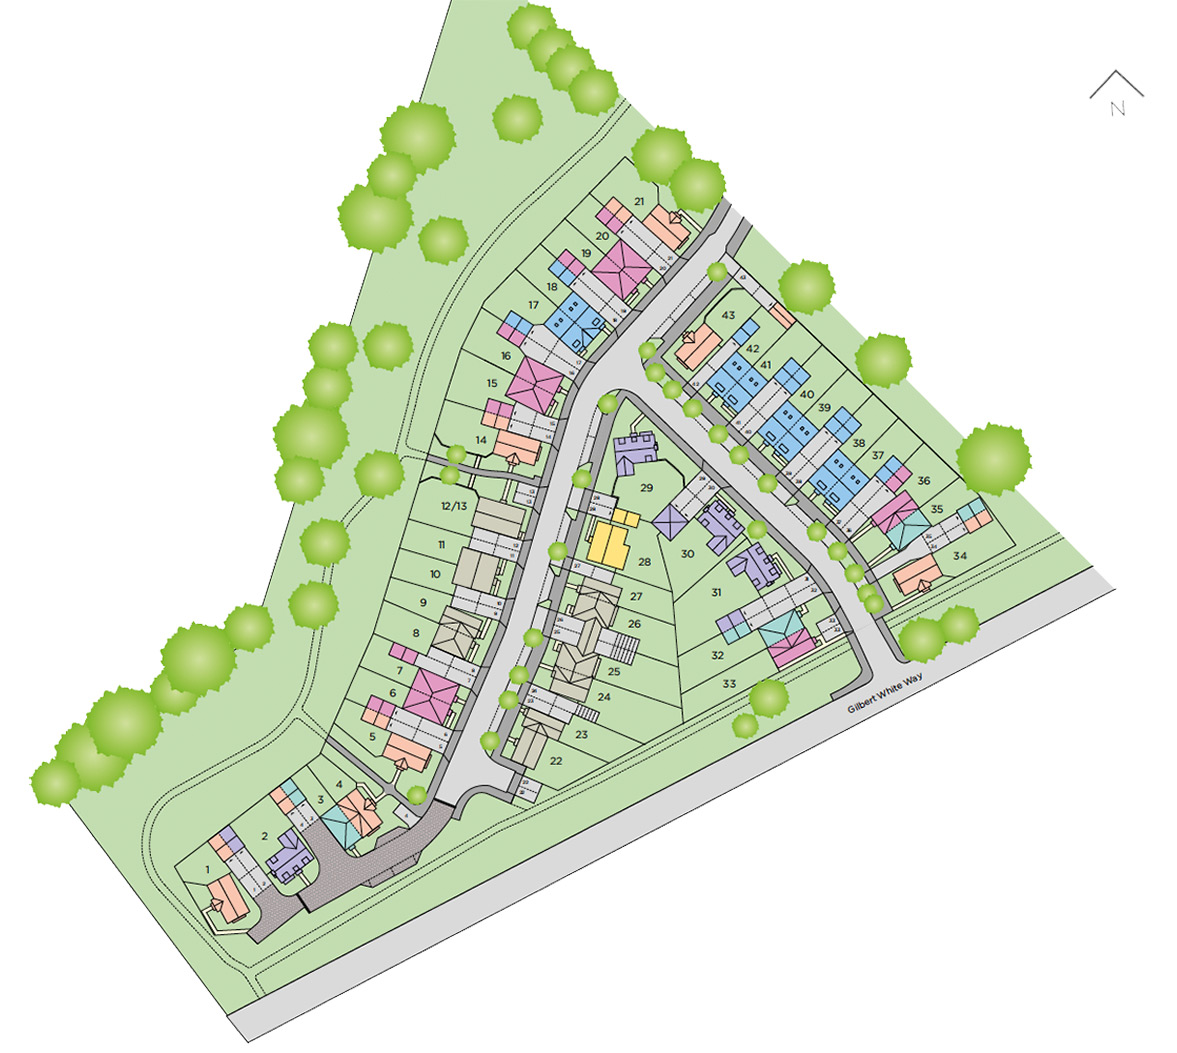 Plot 31 – The Pemberley Siteplan